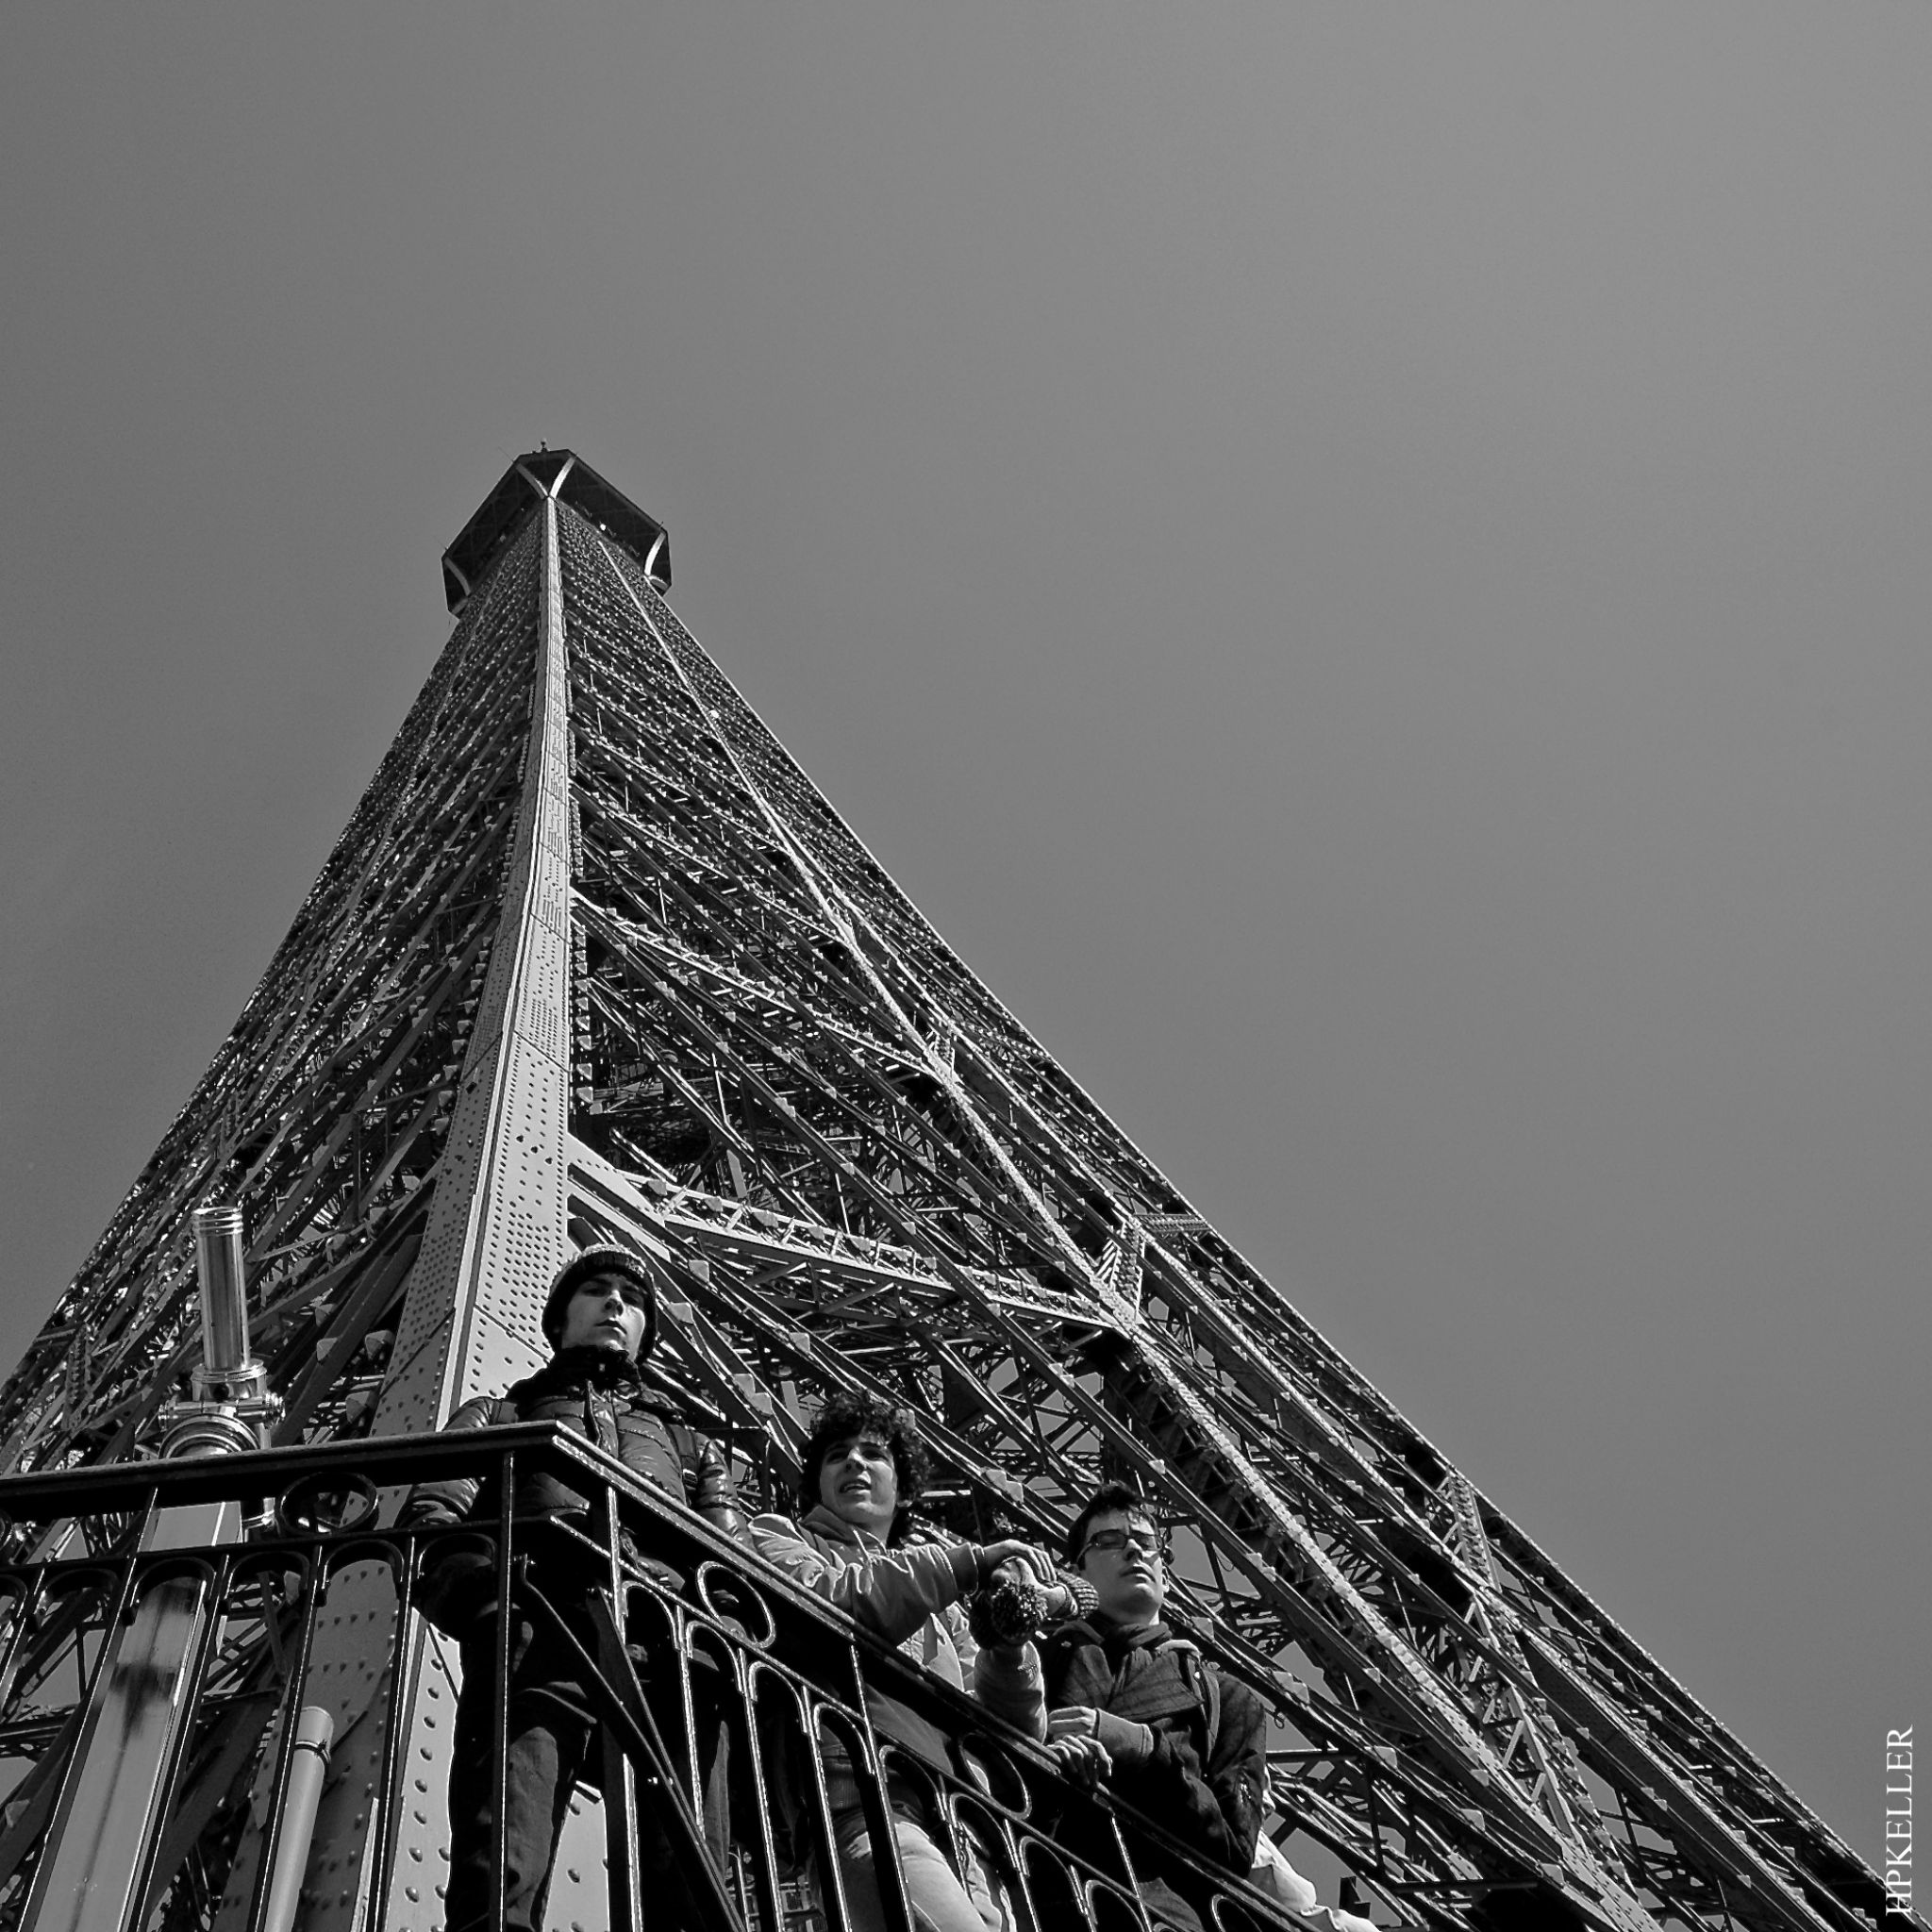 Some month ago in Paris, ...coole guys on the tower. by Hans-Peter Keller